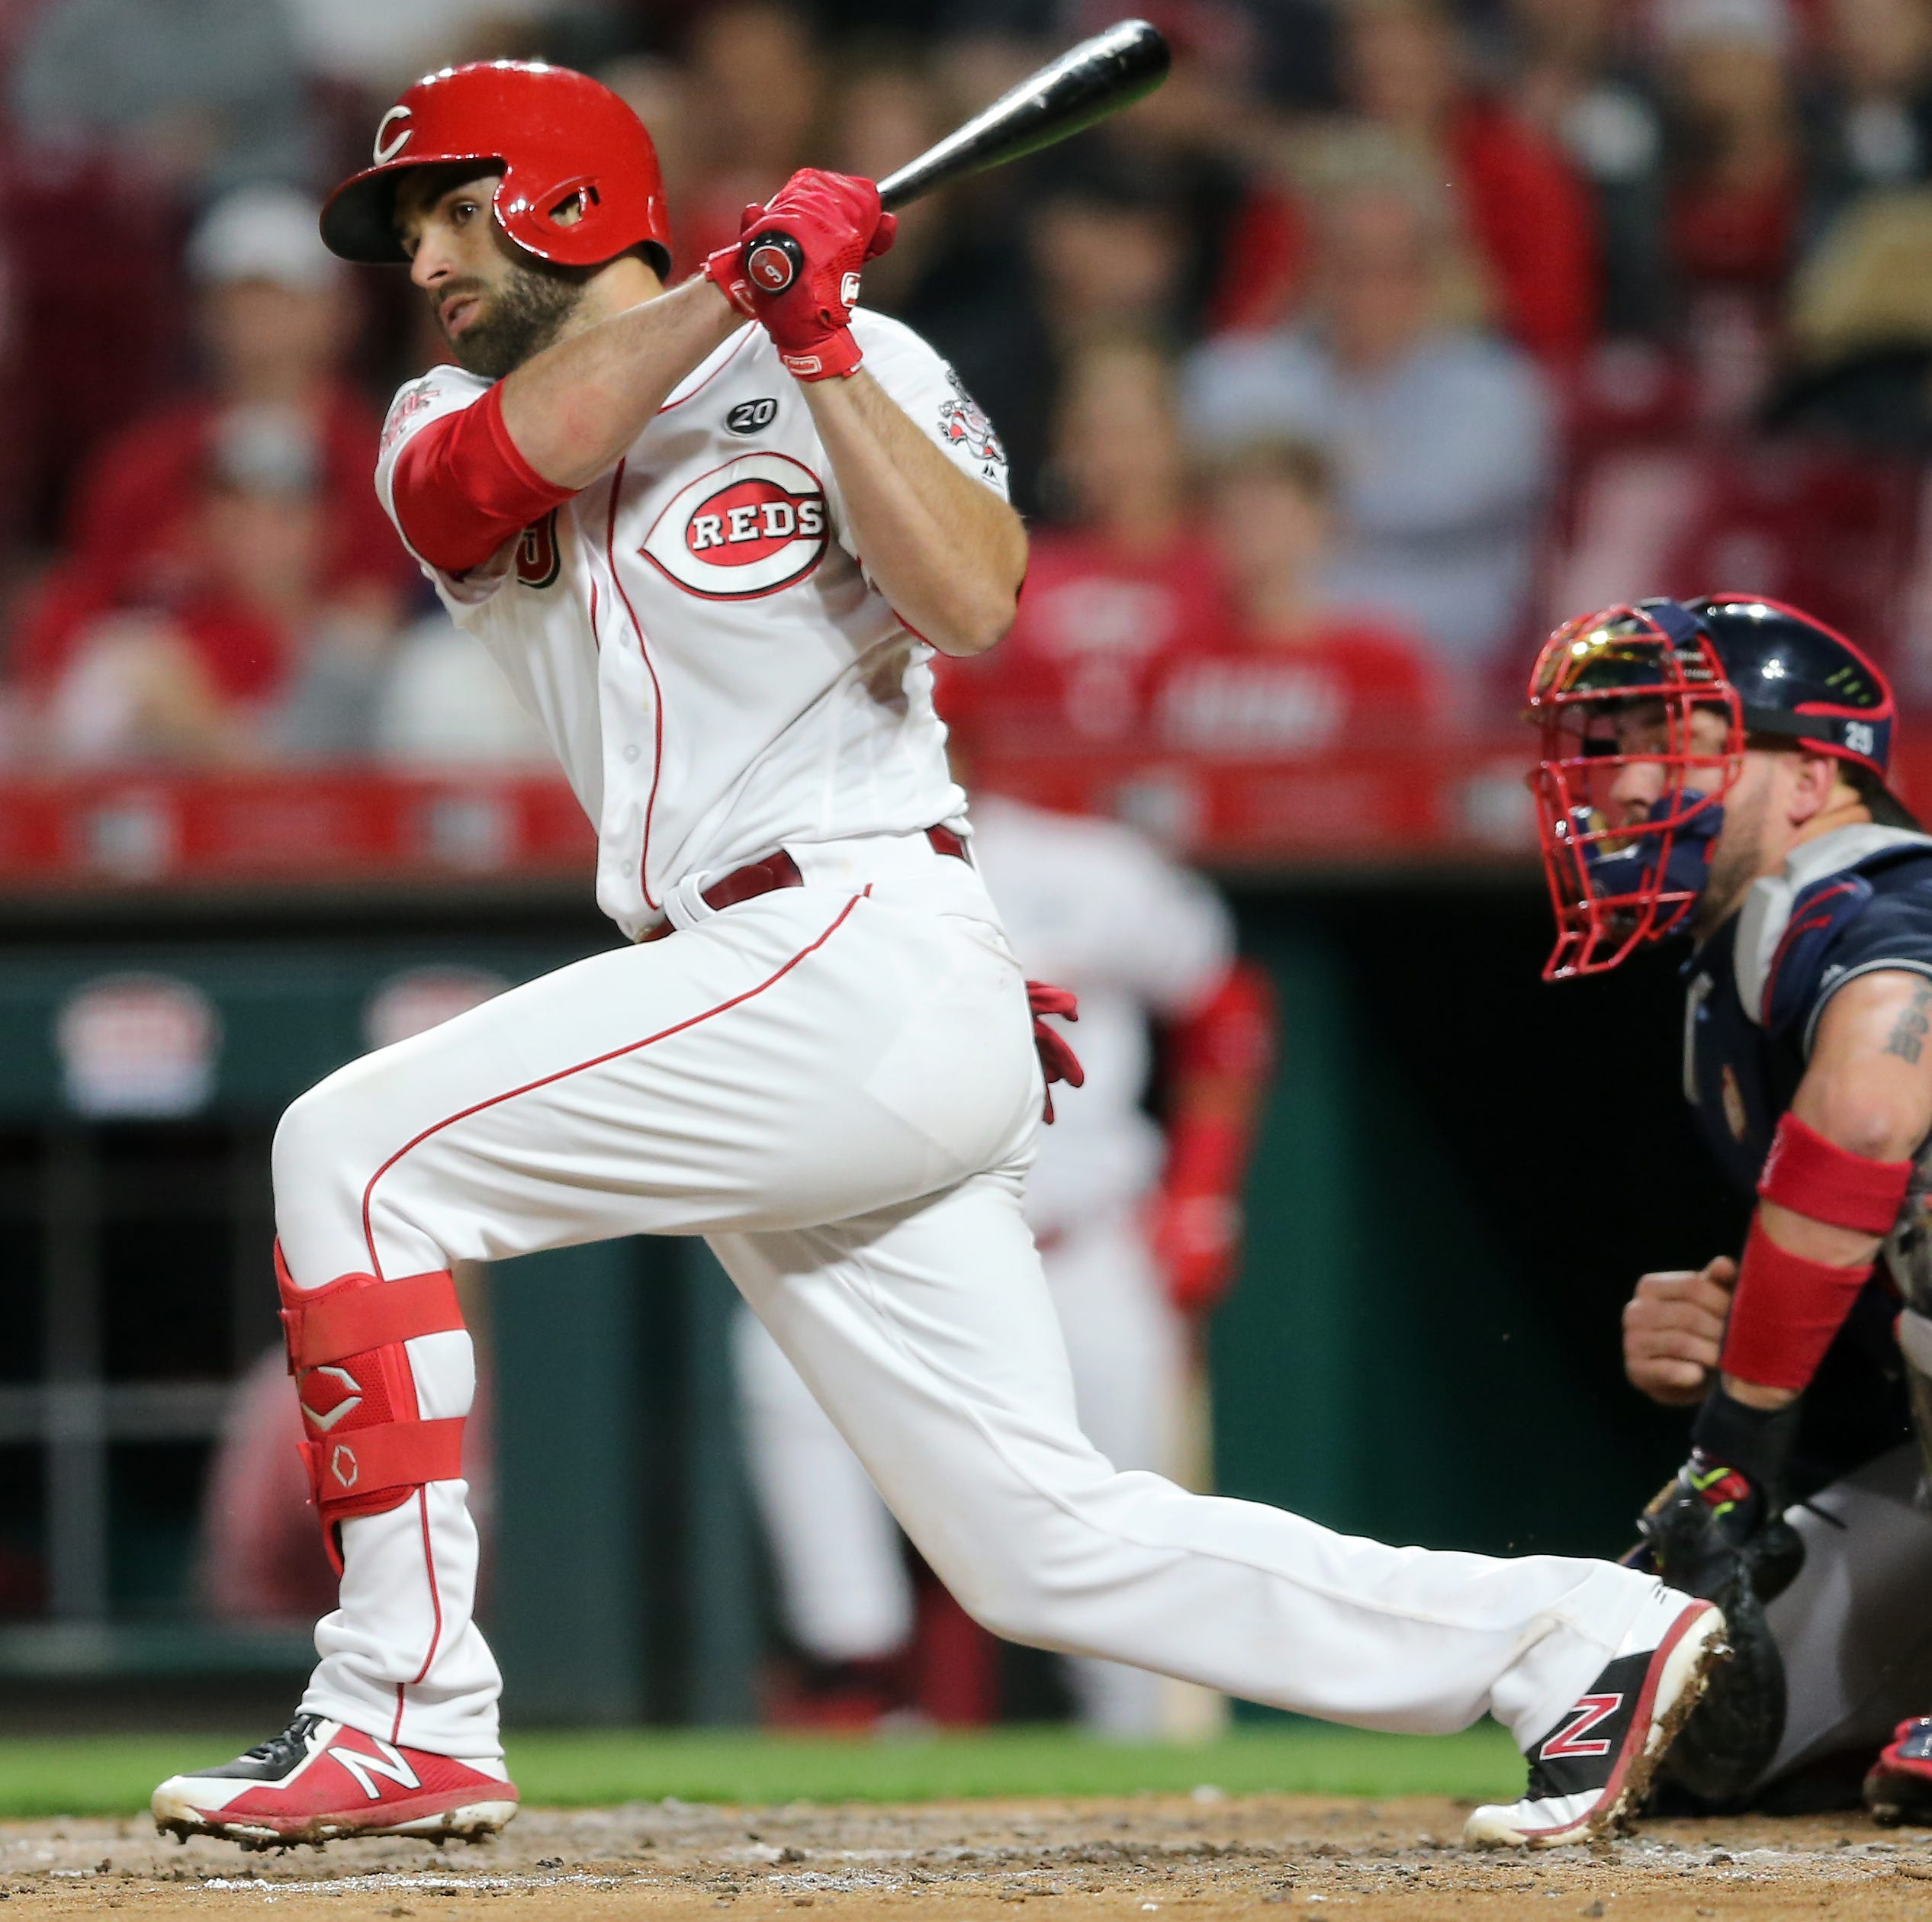 José Peraza moved to leadoff as the Cincinnati Reds try to ignite their offense